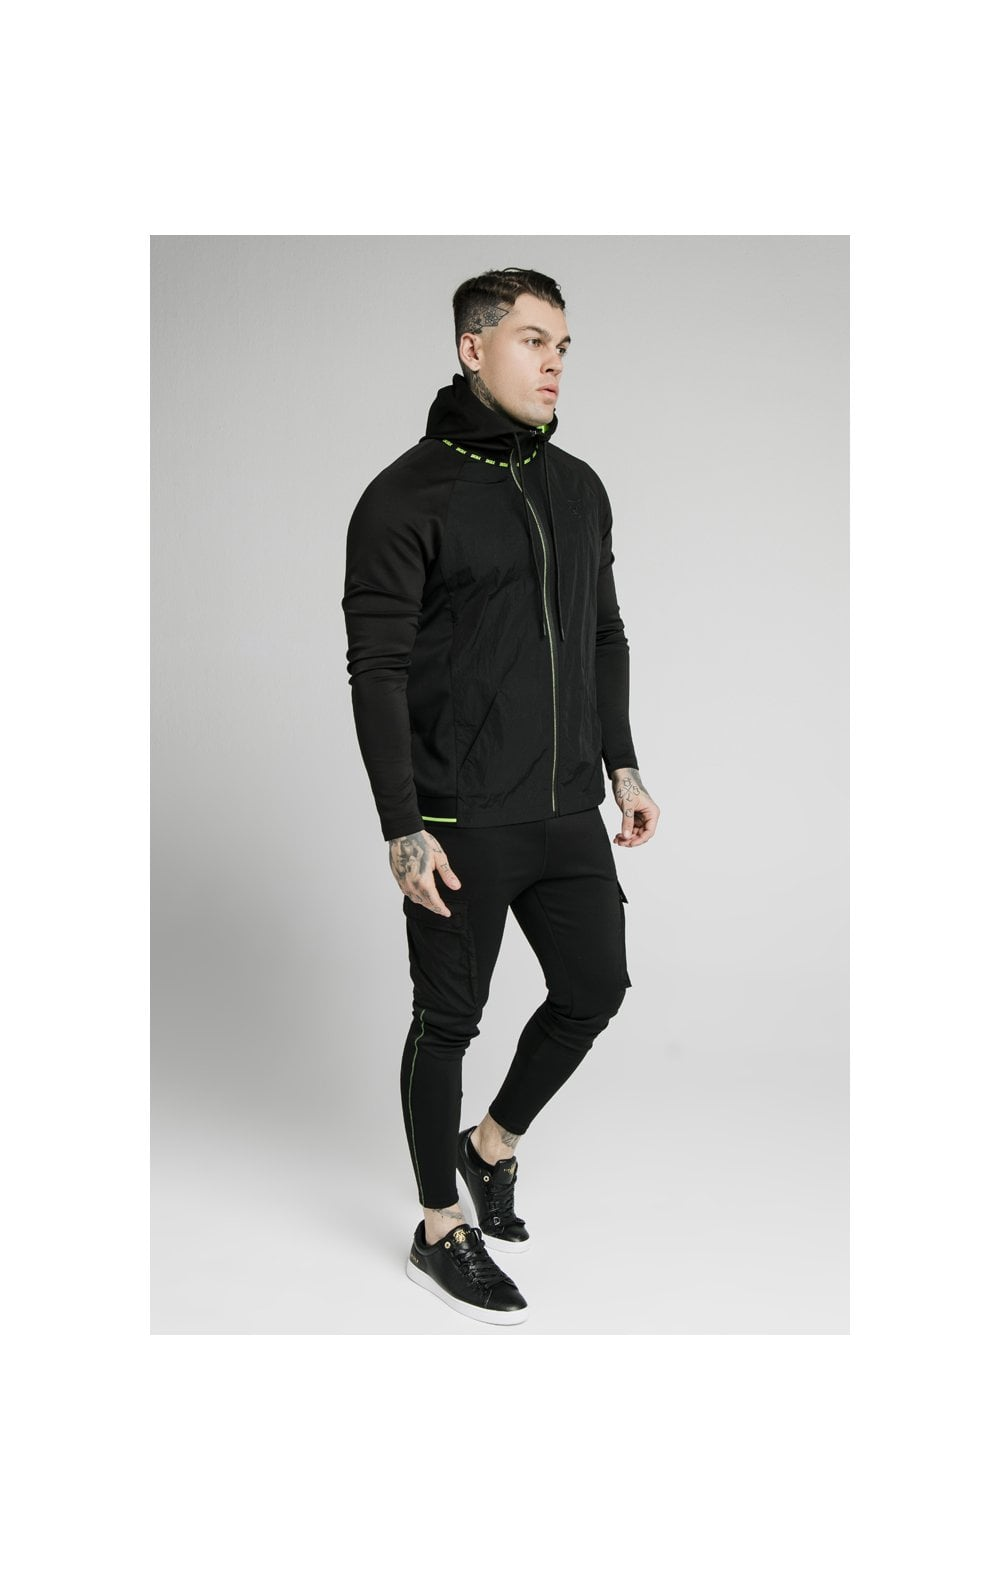 Load image into Gallery viewer, SikSilk Adapt Crushed Nylon Zip Through – Black (4)